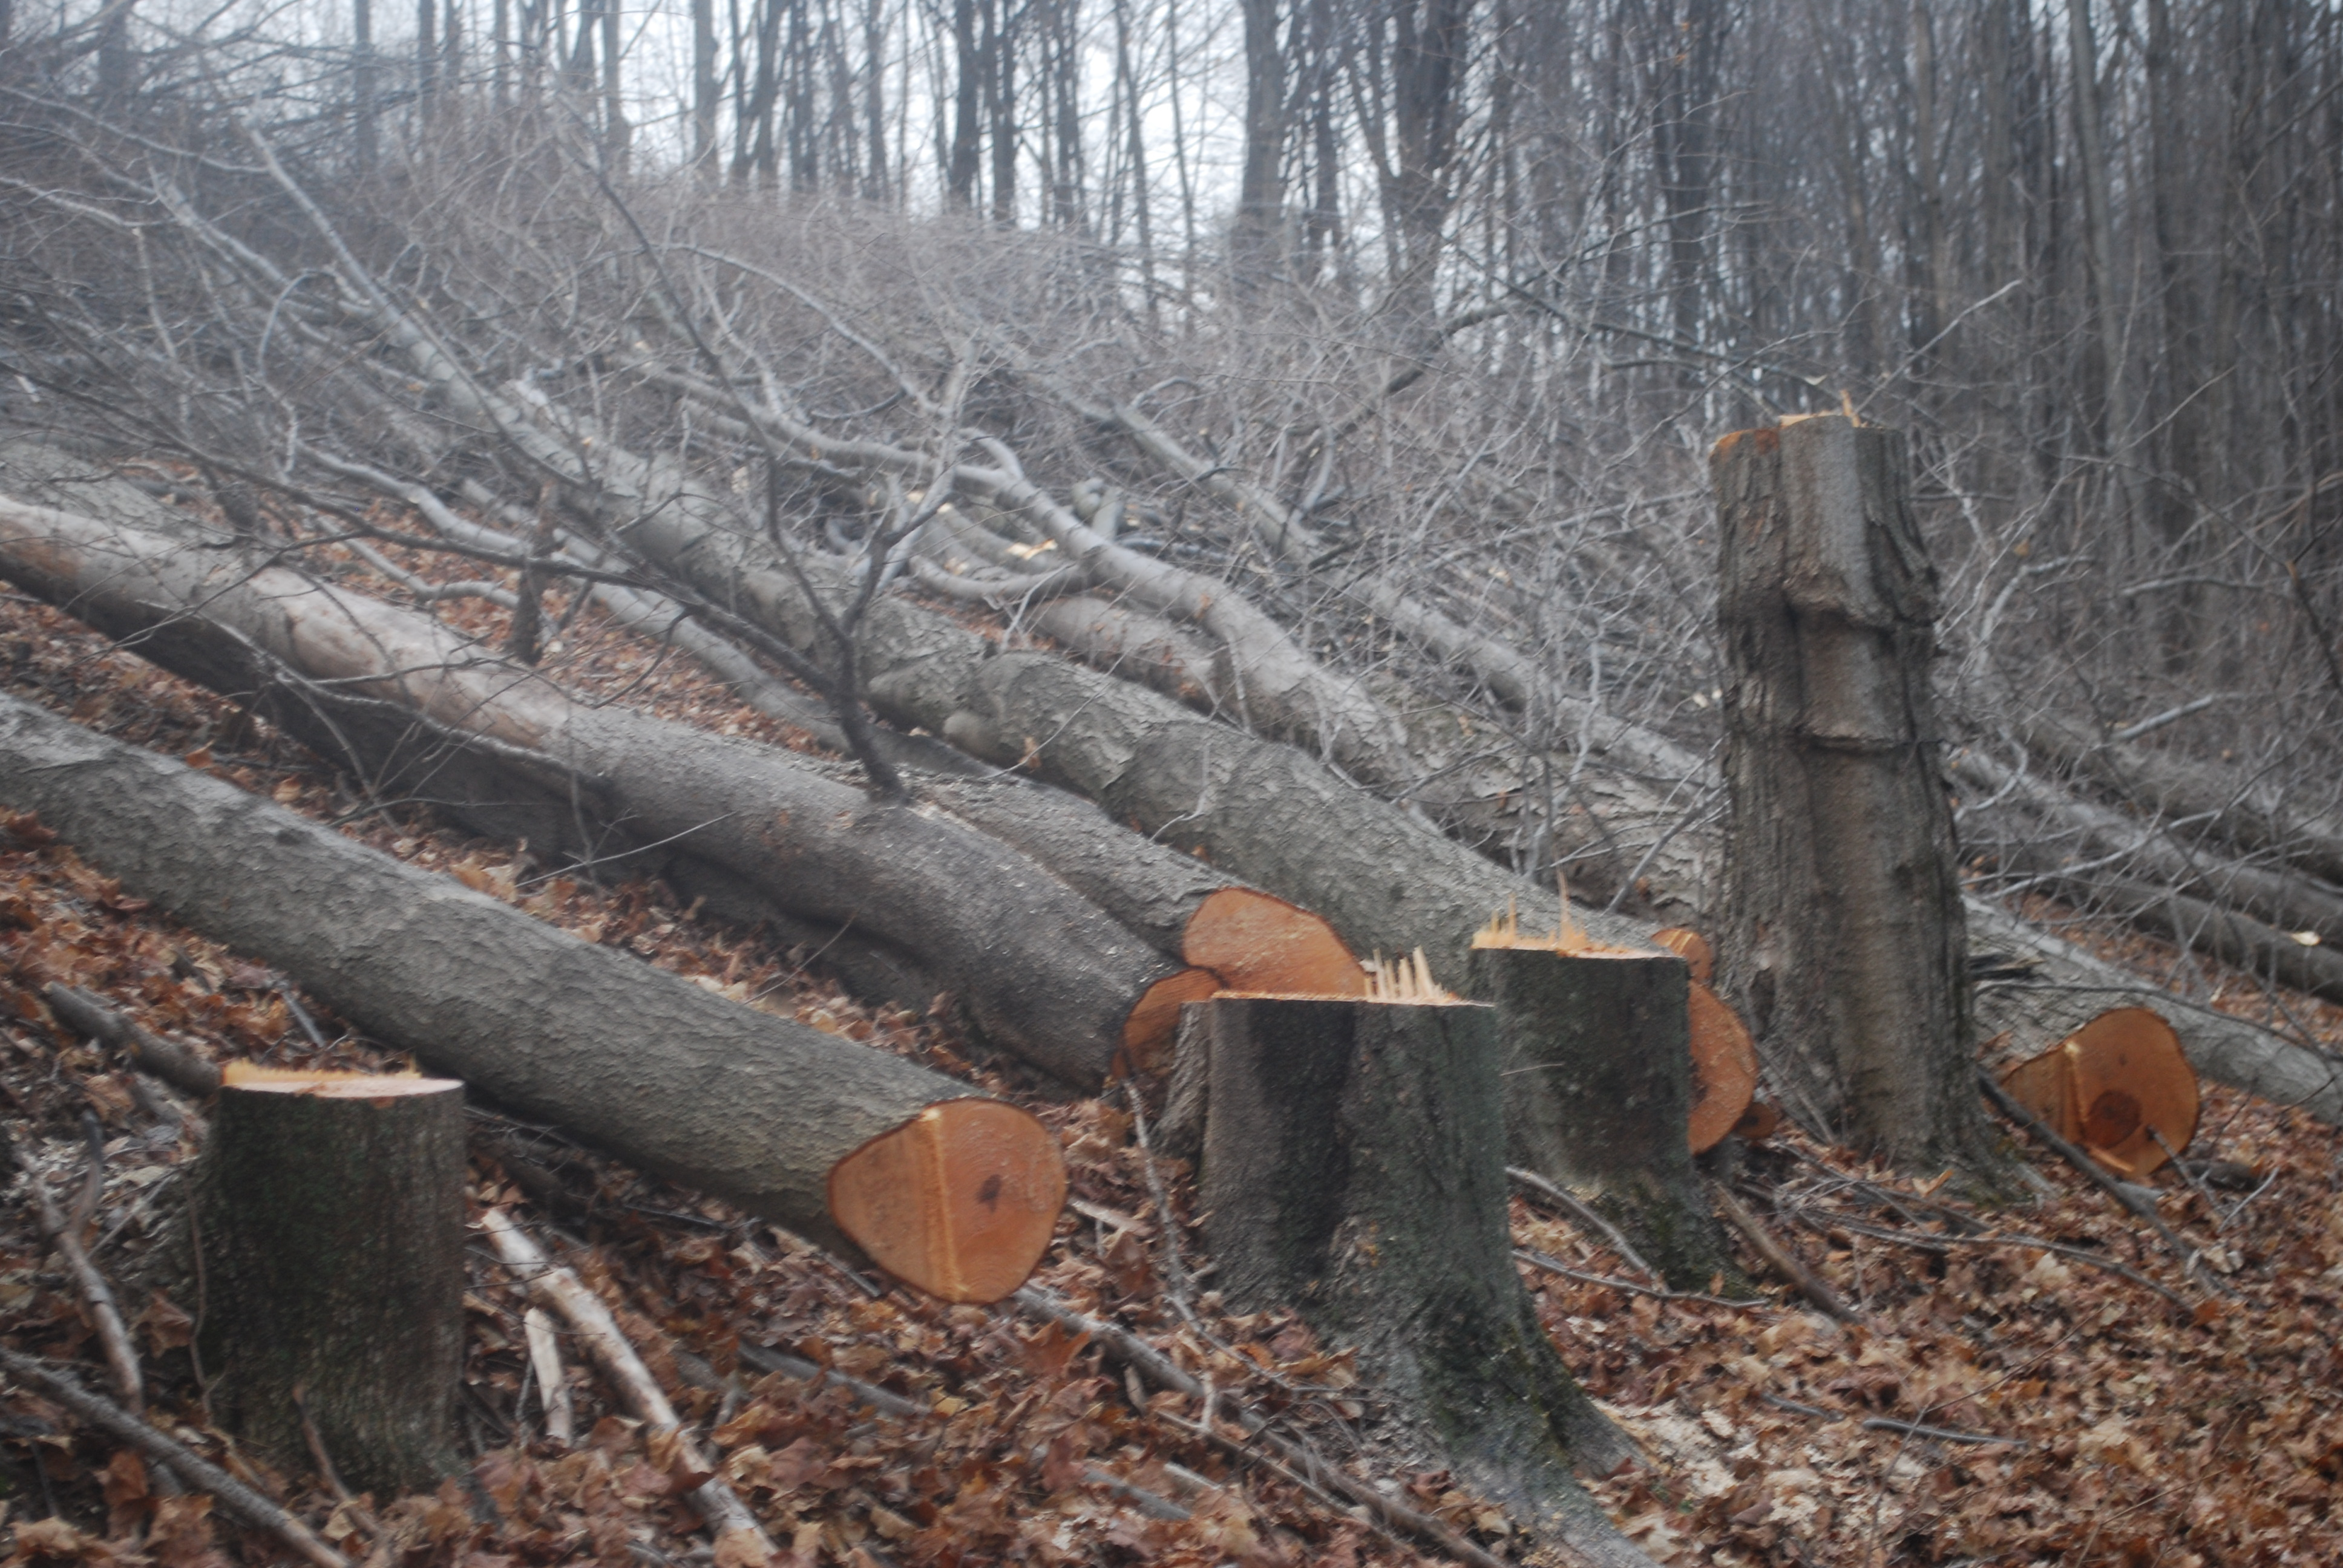 Ahornbaum Schneiden Maple Syrup Trees Cut To Make Way For The Constitution